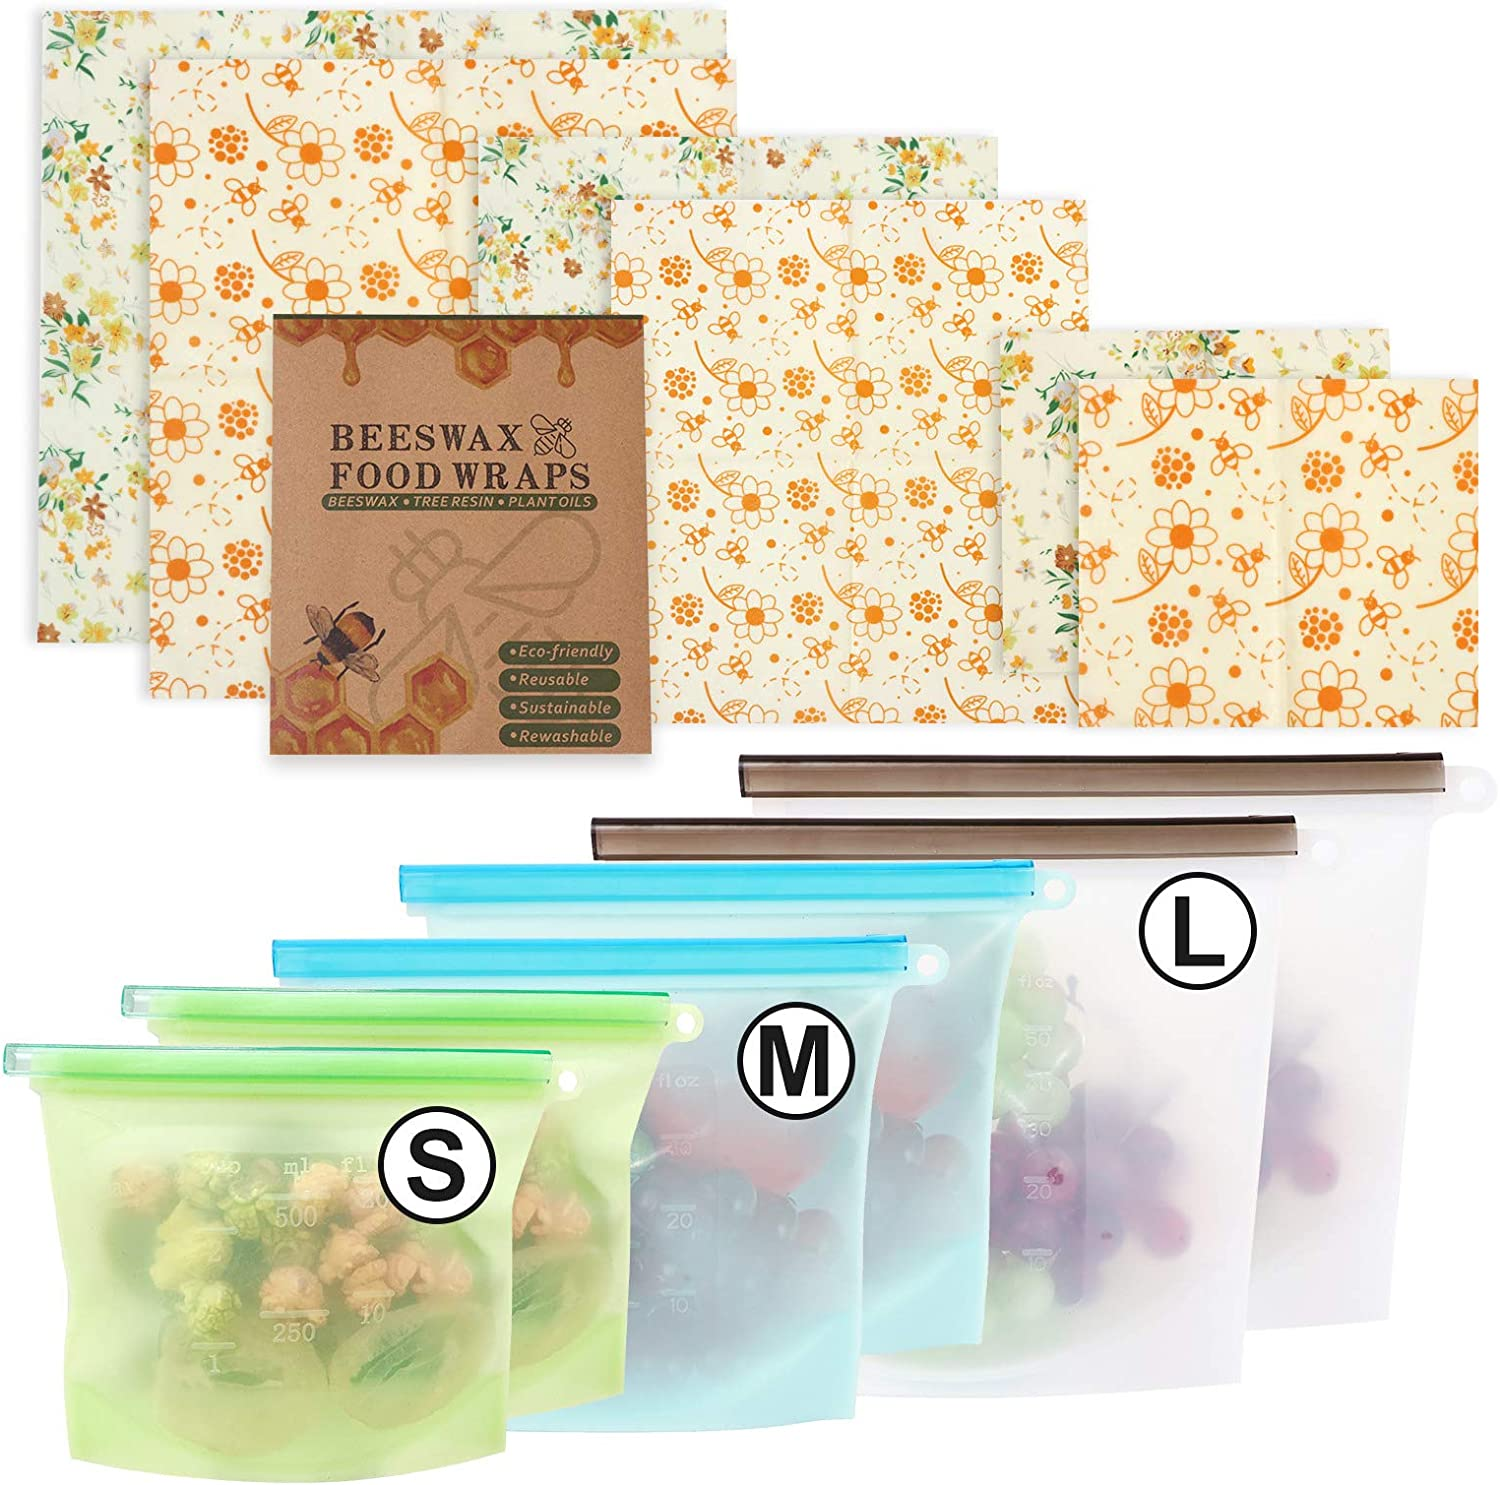 12 Pack Beeswax Reusable Food Wraps & Silicone Food Storage Bag, Eco-Friendly Reusable Beeswax Wraps, Airtight Seal Food Preservation Bags for Vegetable, Fruit, Snack, Lunch